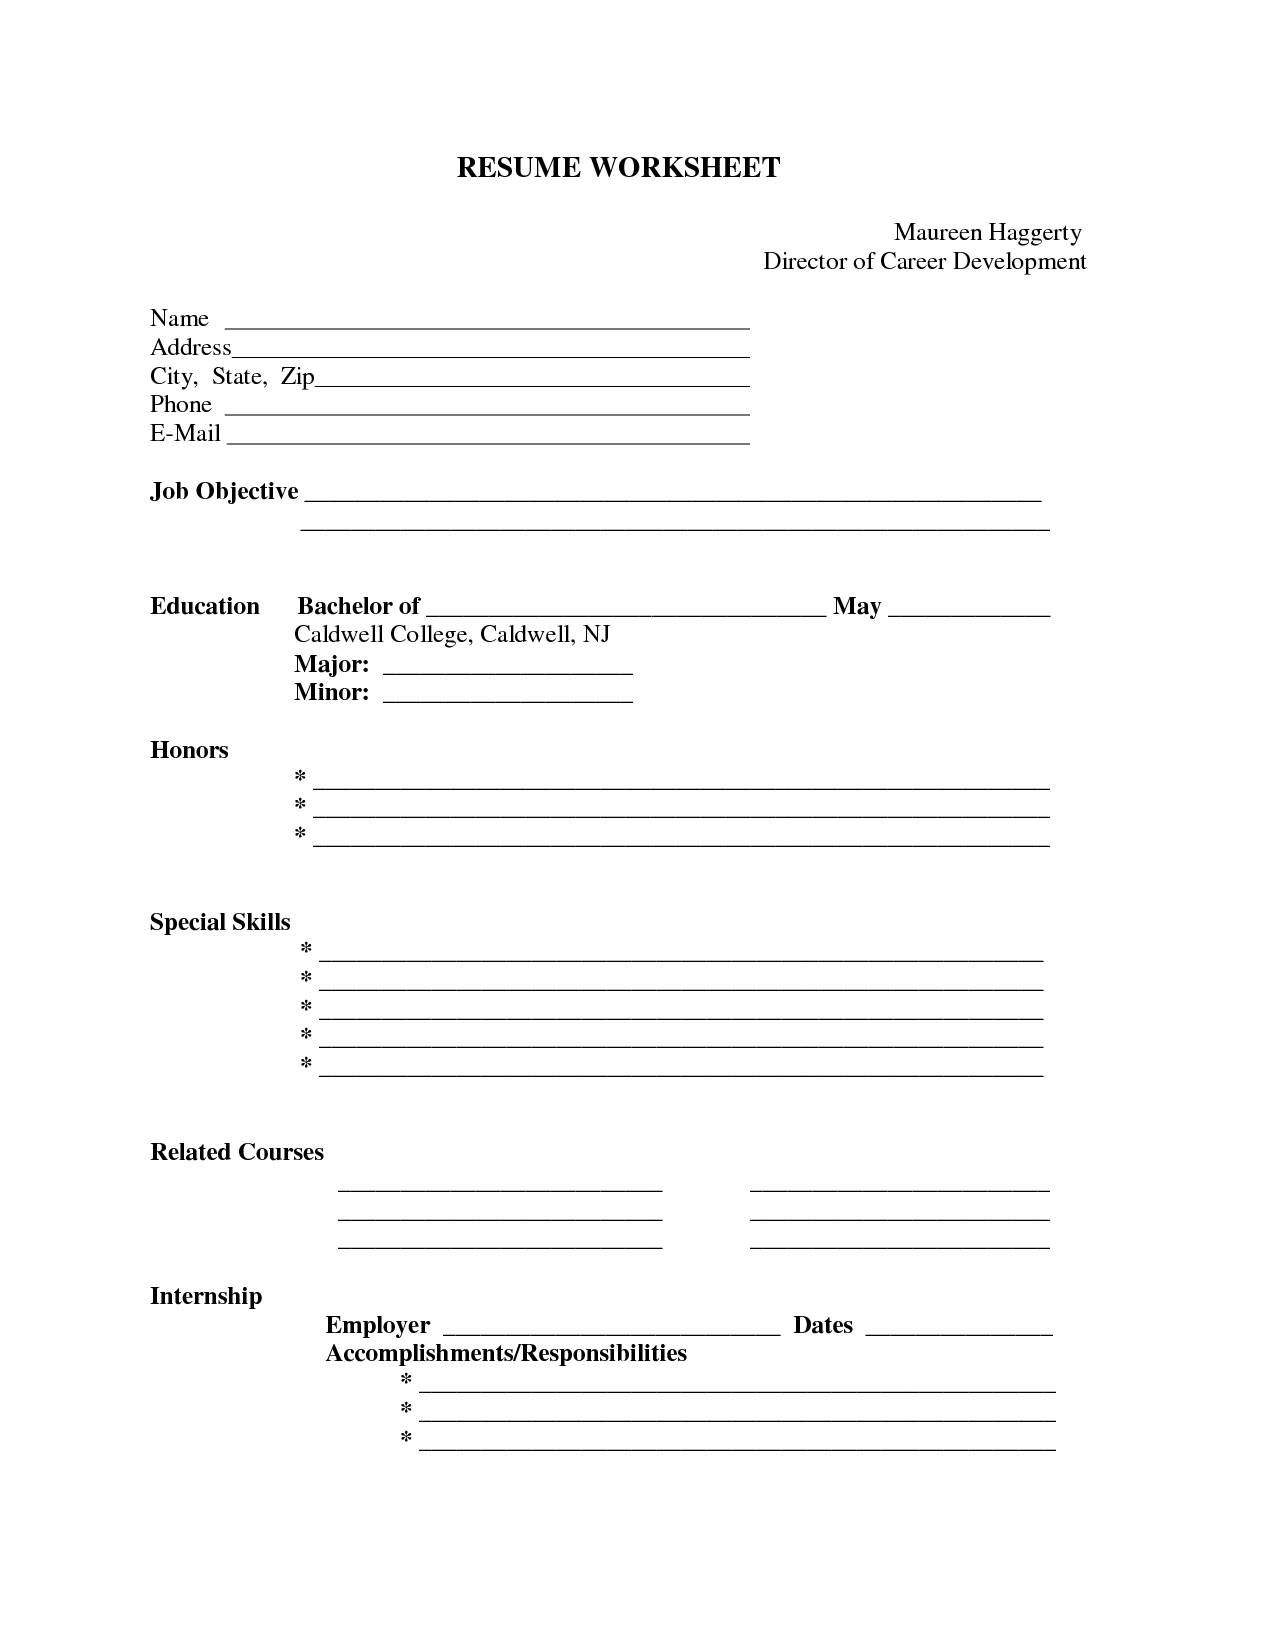 Printable Resume Template Free Printable Blank Resume Forms  Httpwwwresumecareer